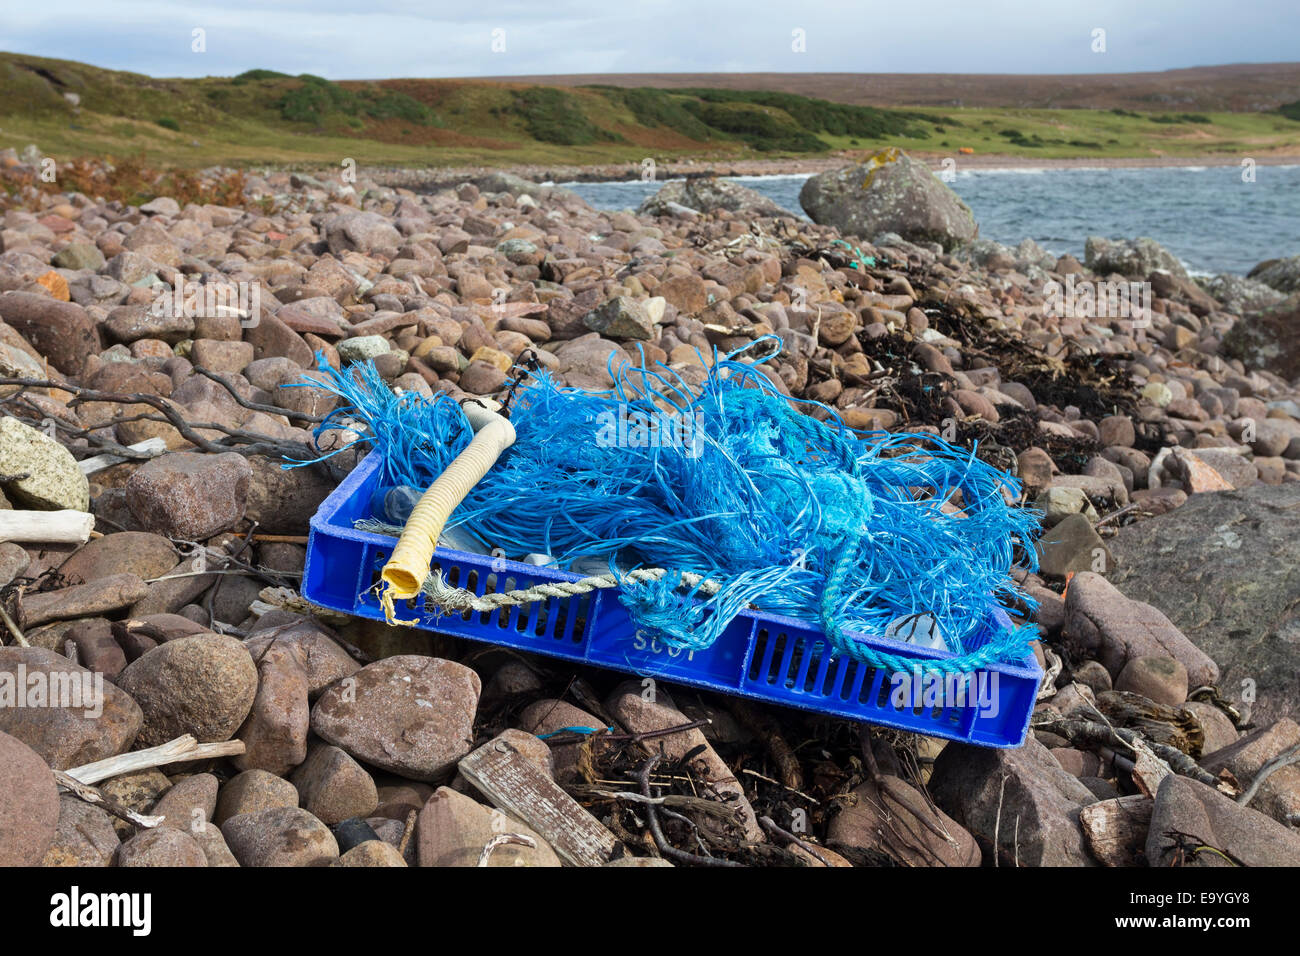 Plastic Rubbish Washed up on the Shore Which has Been Collected Together for Removal from the Beach at  Red Point - Stock Image